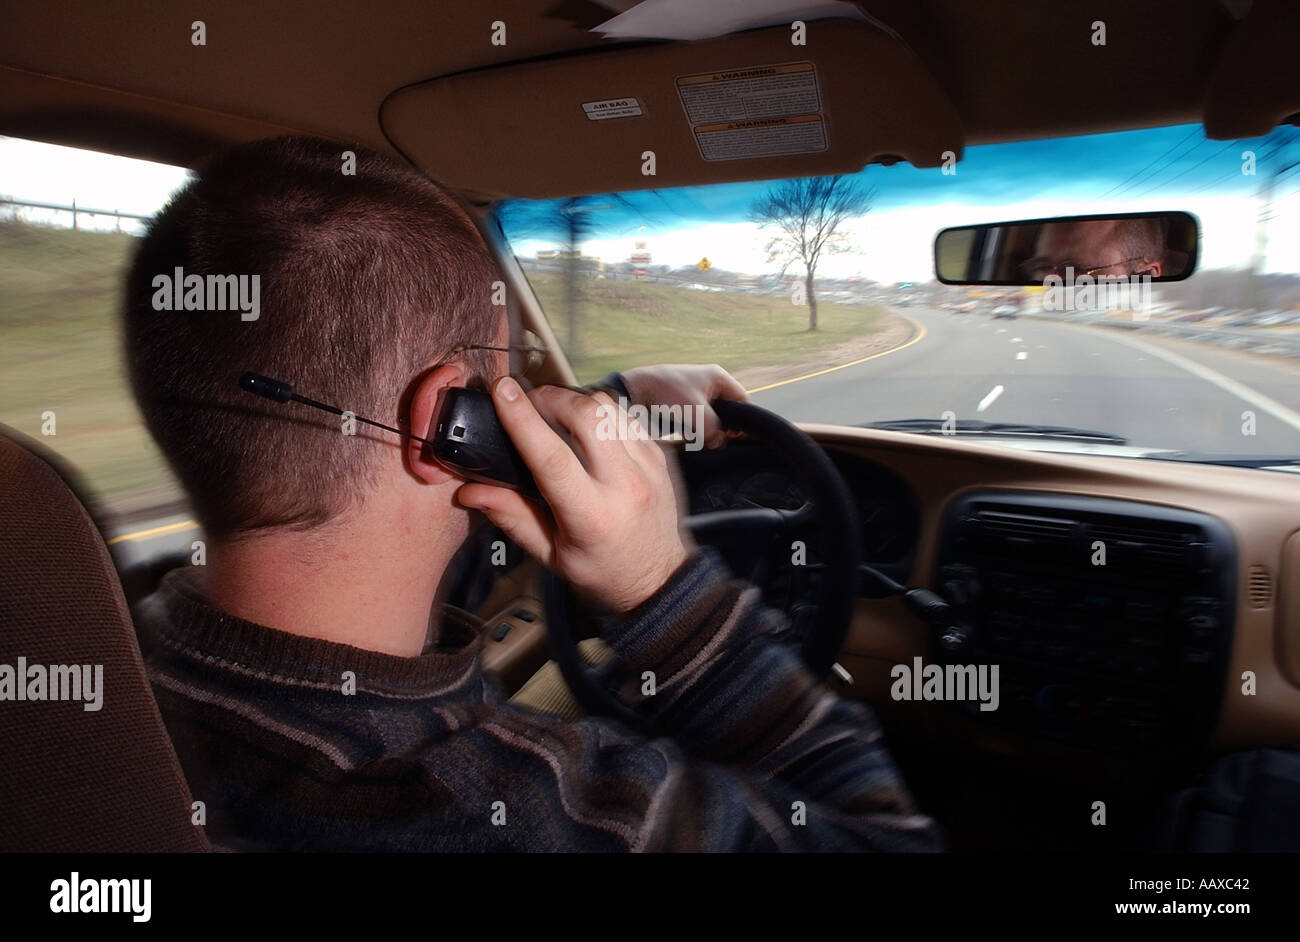 talking on cell phones while driving essays A custom written essay sample on the dangers of texting while driving written for you from scratch.